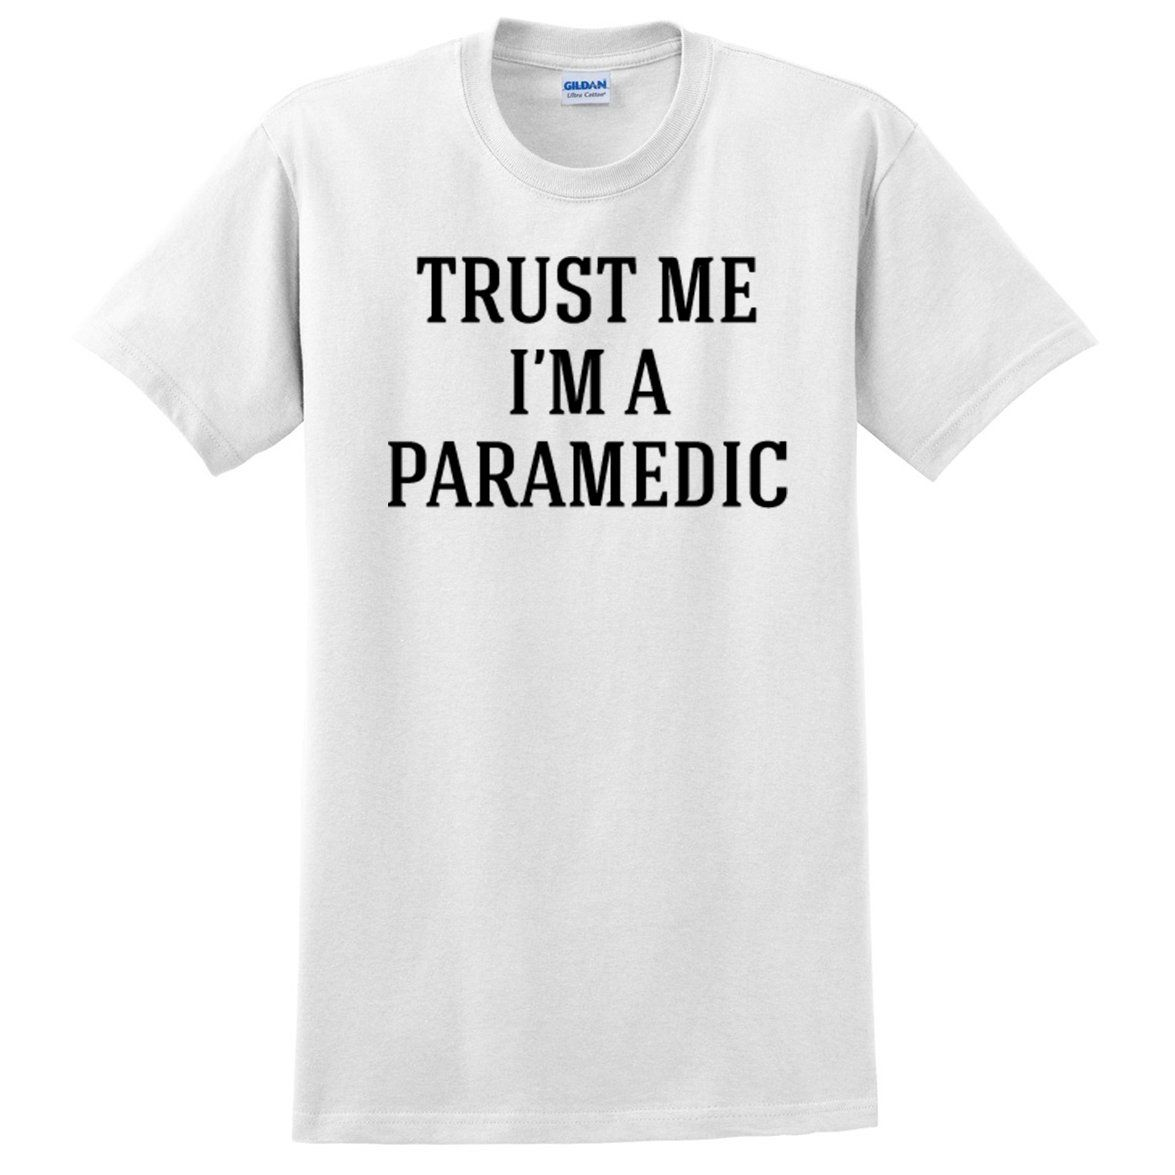 Trust me I'm a paramedic funny cool geek gift ideas T